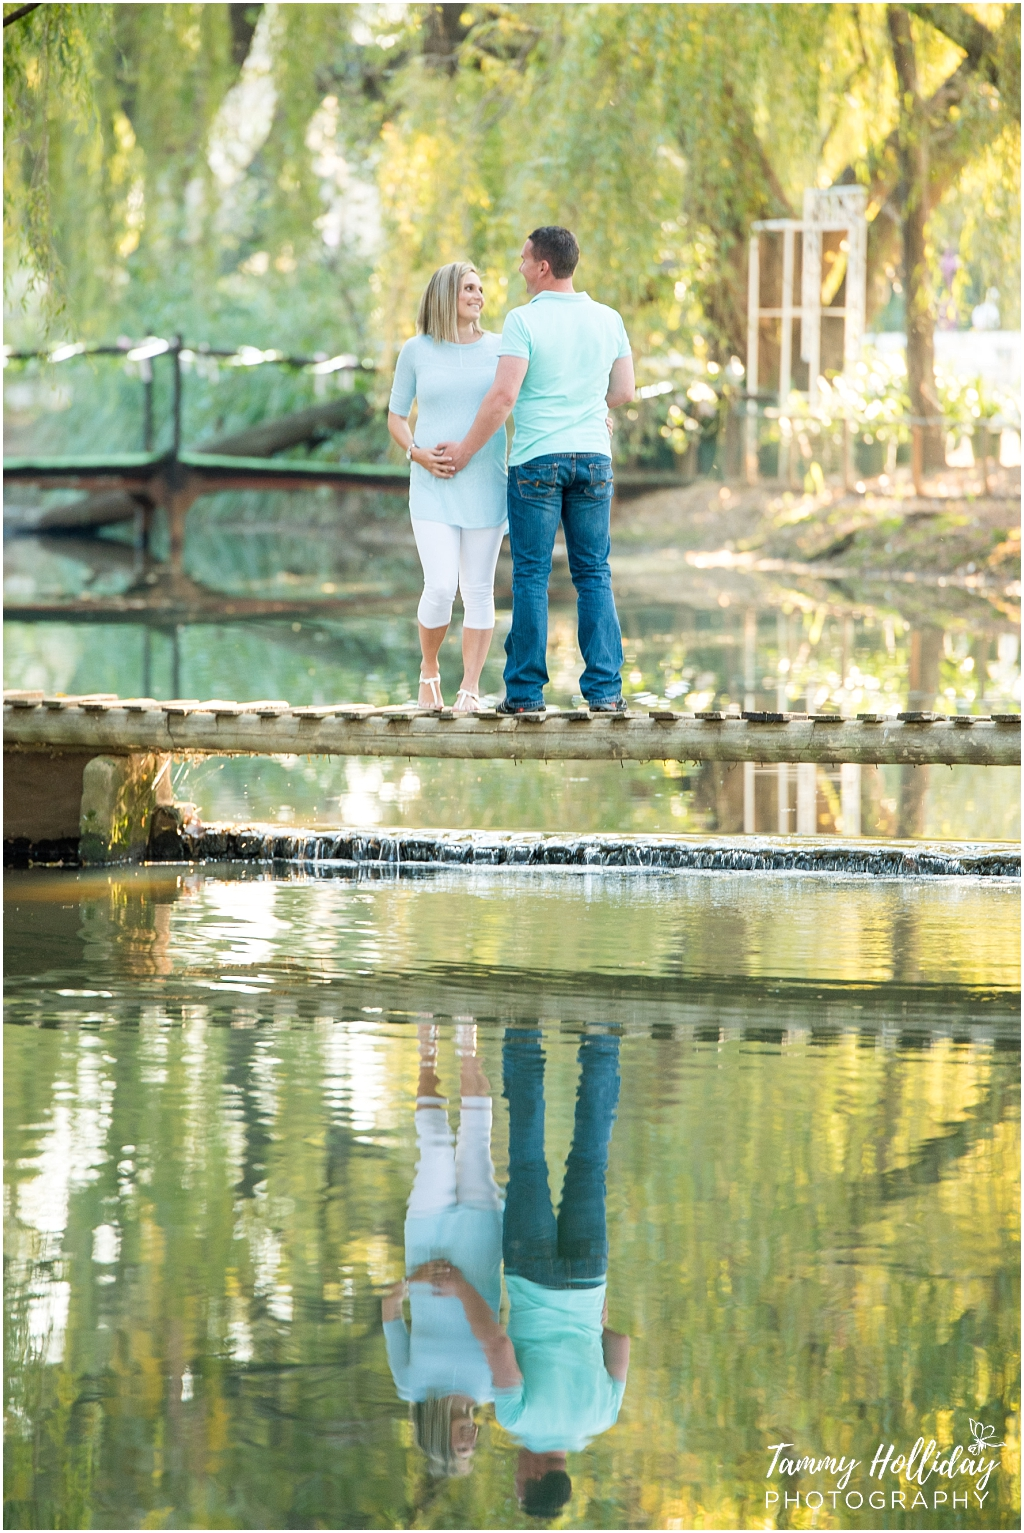 Heavensgate Maternity Session, photos on a bridge over a river with a reflection